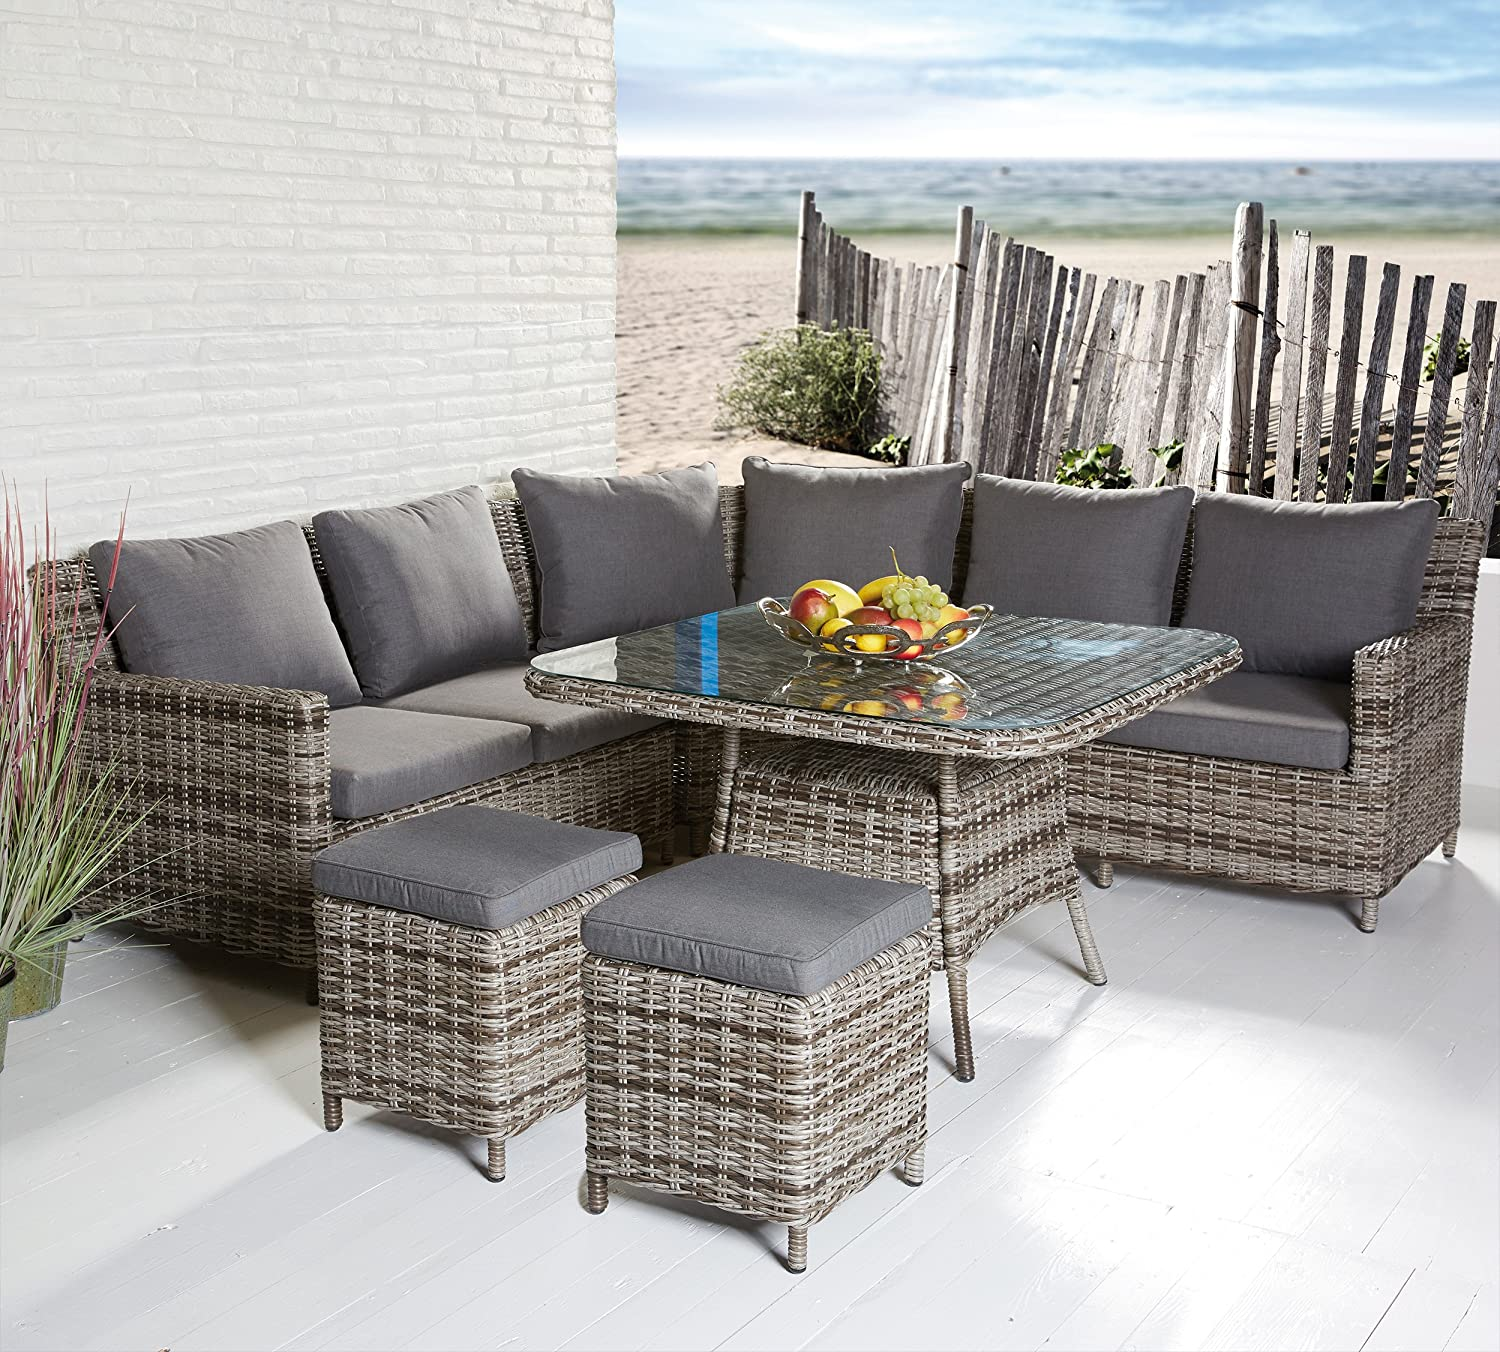 gartenm bel set poly rattan loungem bel sitzgruppe gartenstuhl garnitur gruppe g nstig online kaufen. Black Bedroom Furniture Sets. Home Design Ideas